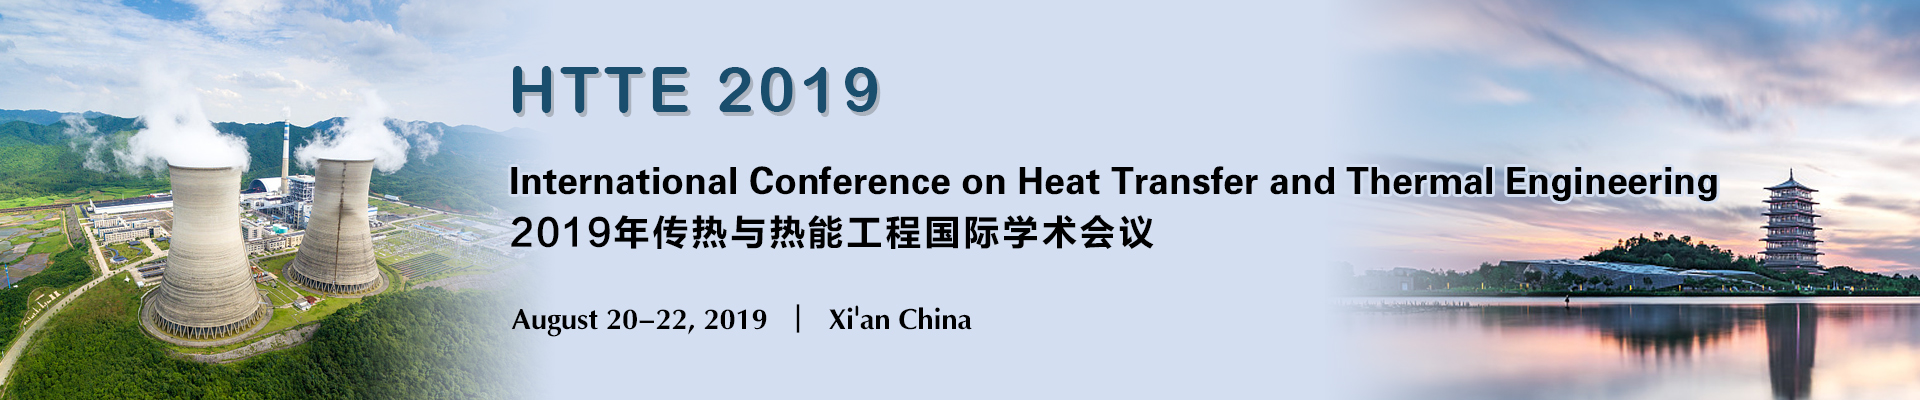 International Conference on Heat Transfer and Thermal Engineering